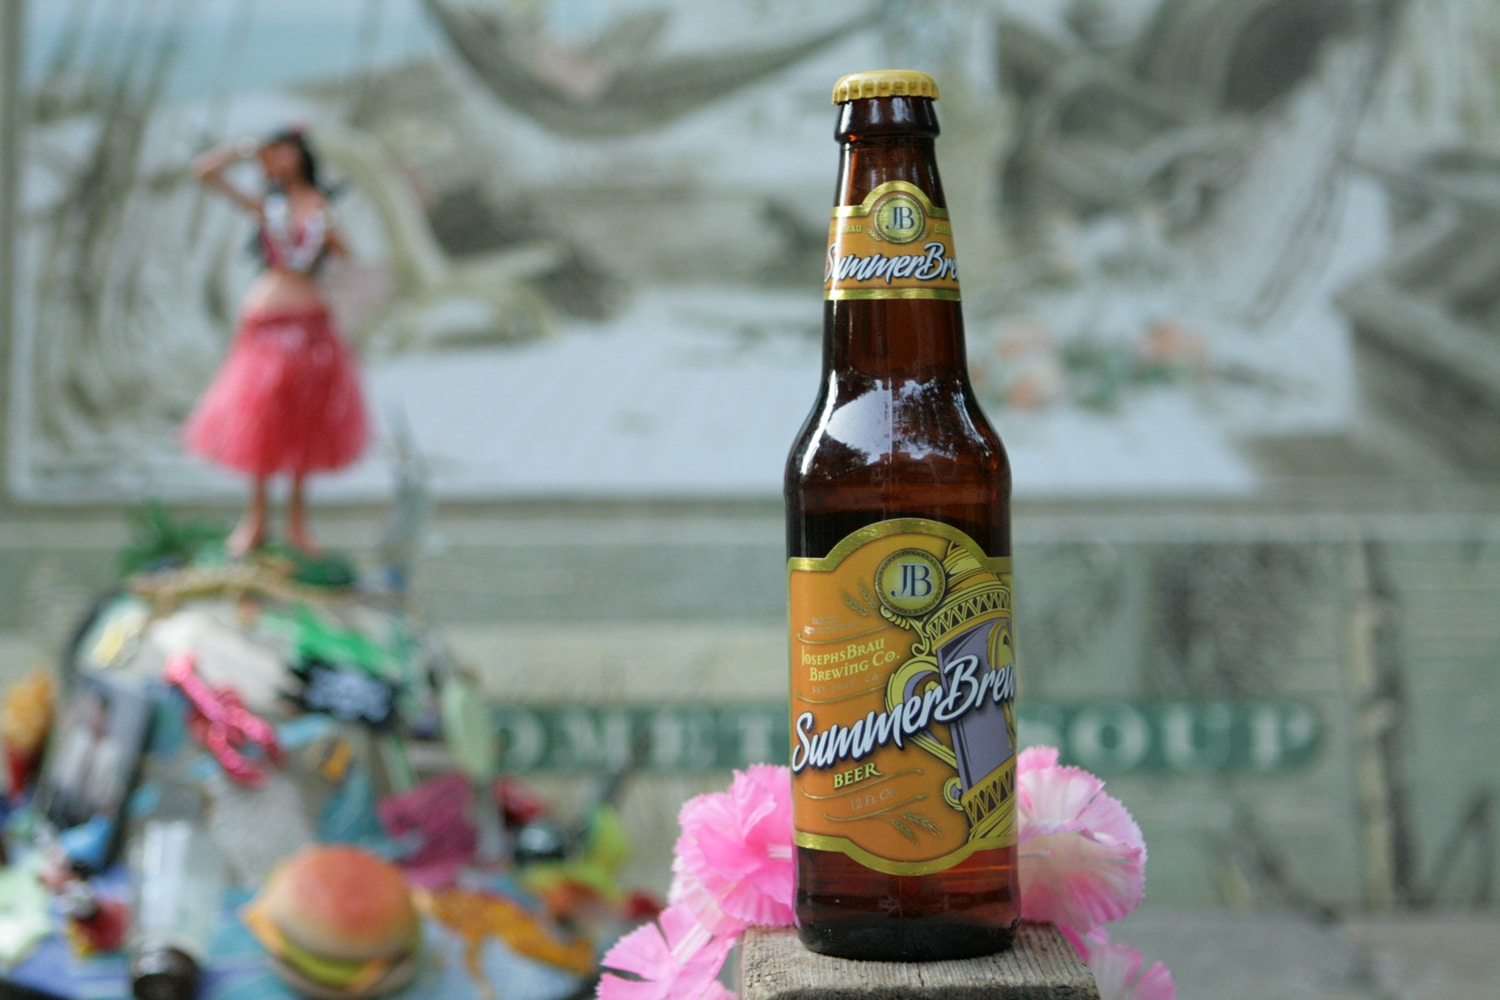 Trader Joe's summer beer is called Summer Brew by Josephs Brau Brewing Co.